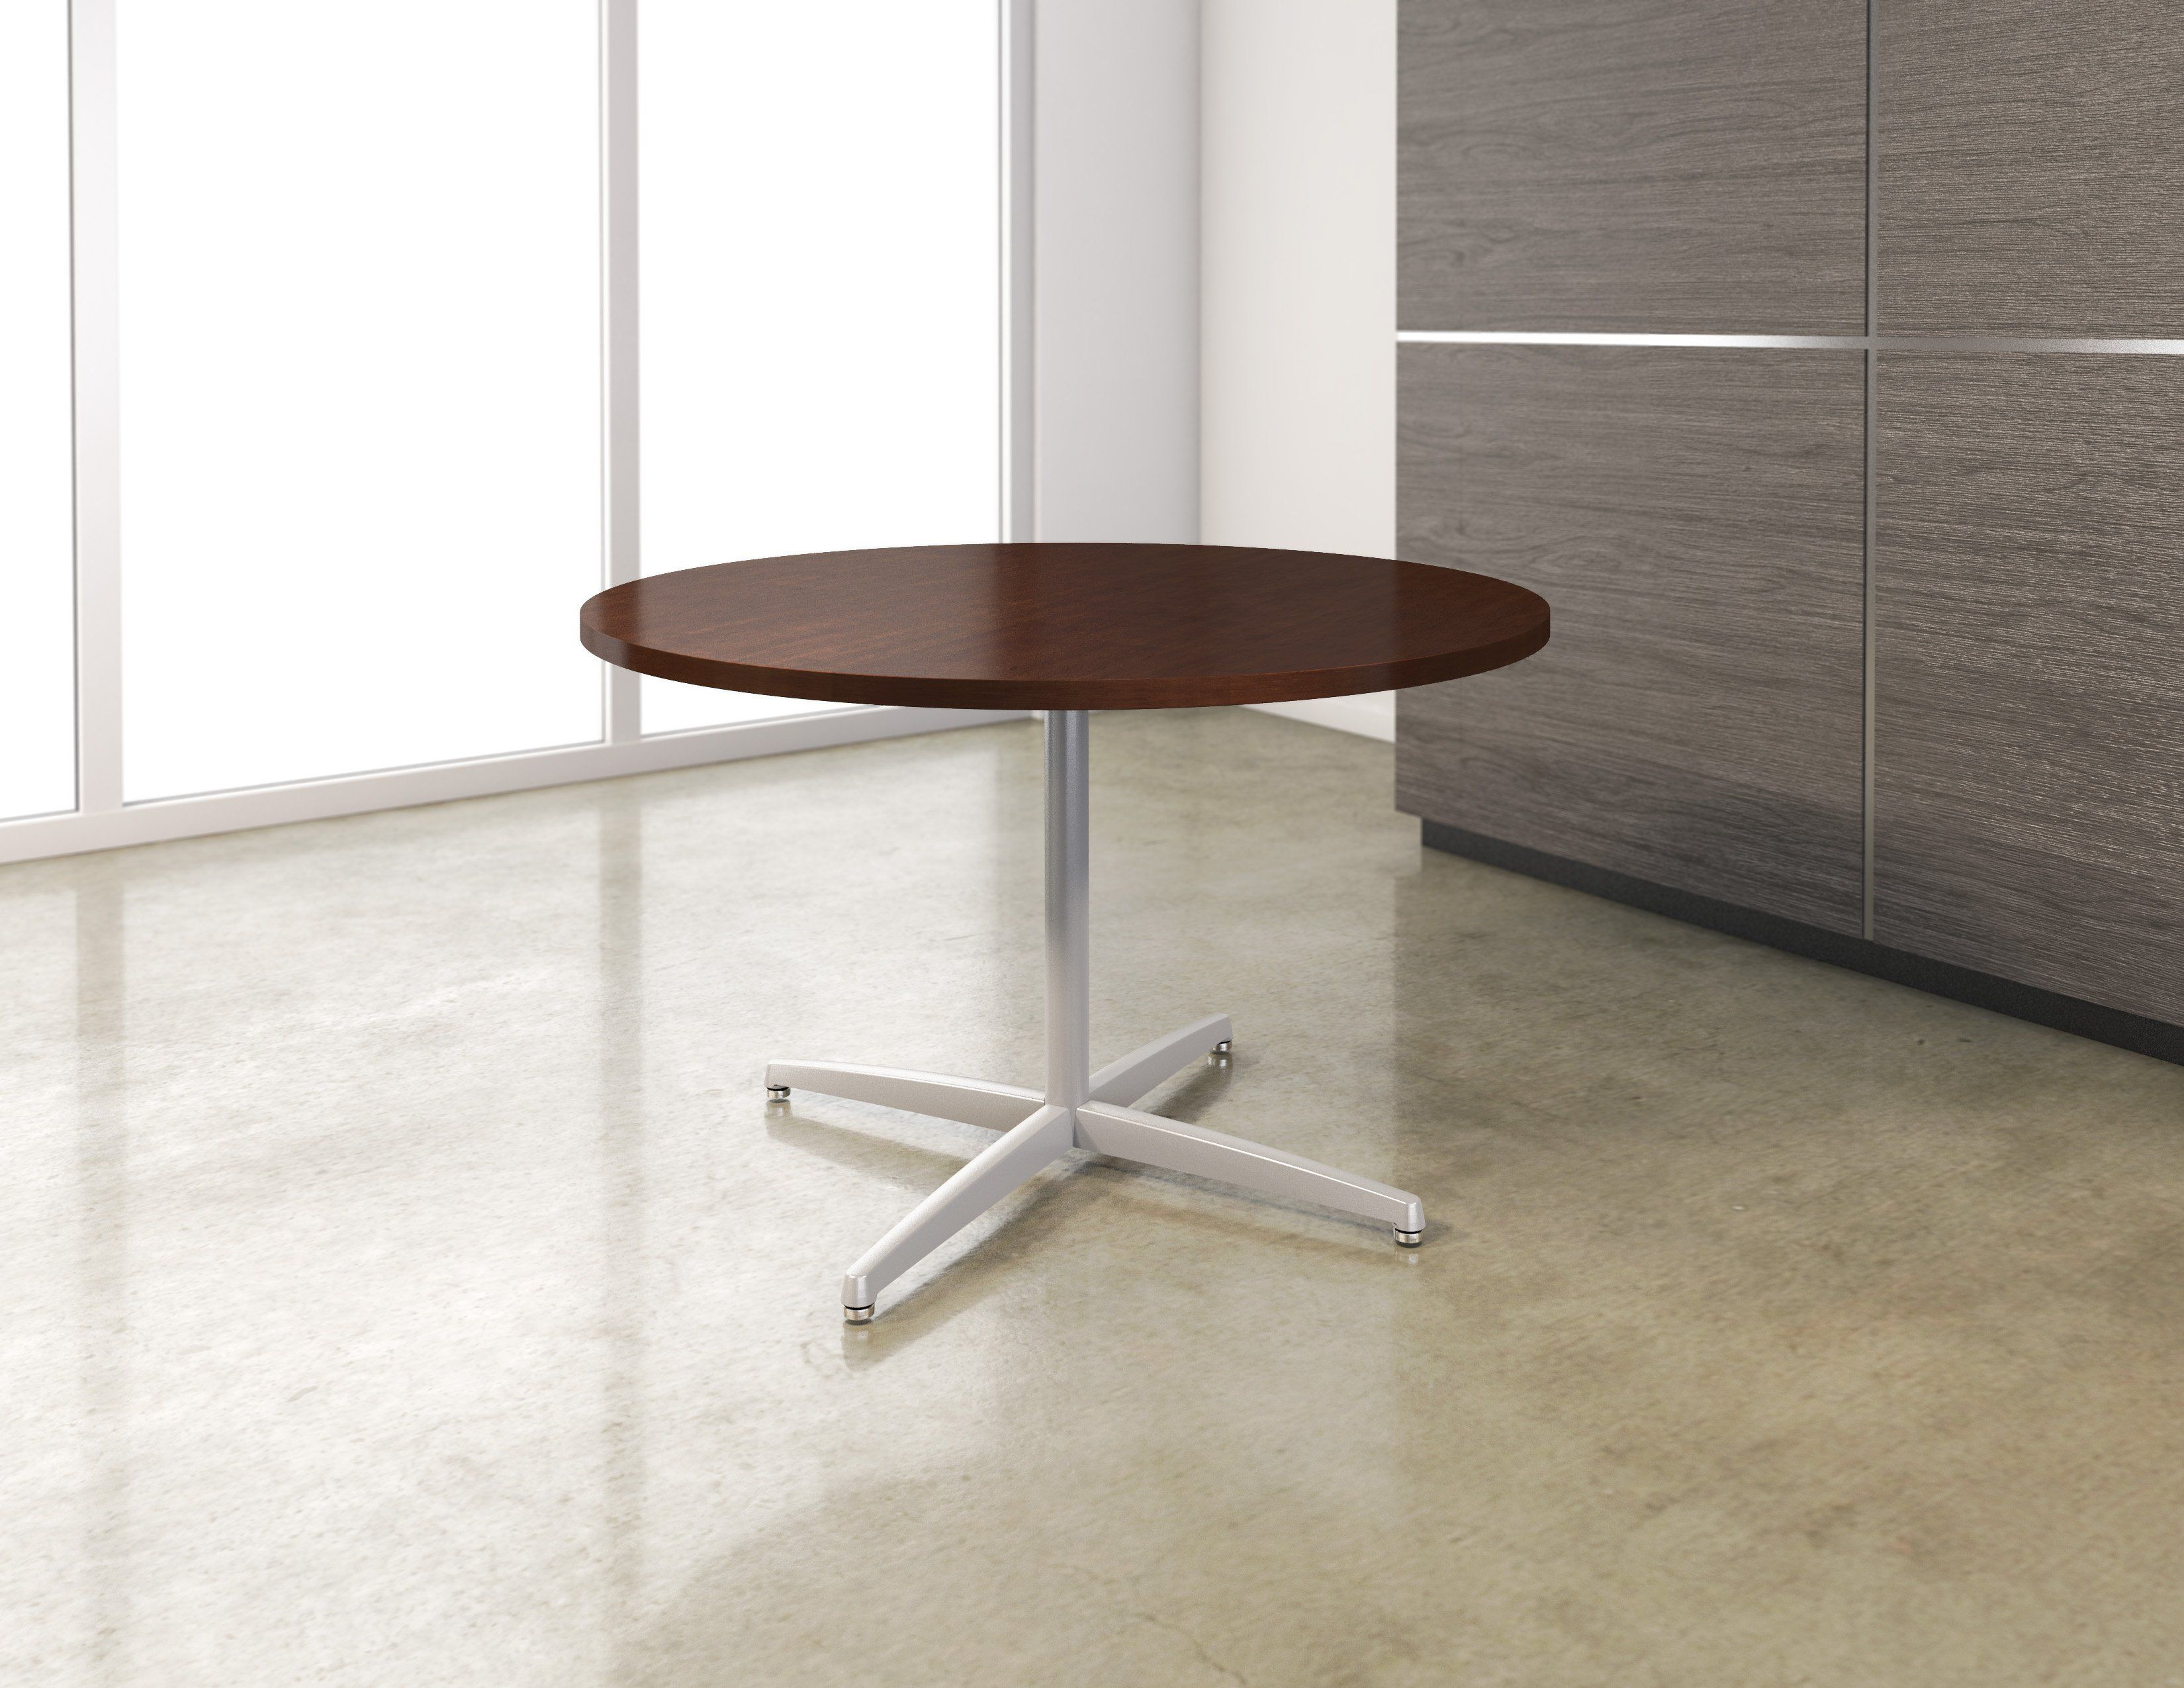 Americana™ Conference Tables + Office Furniture  Table